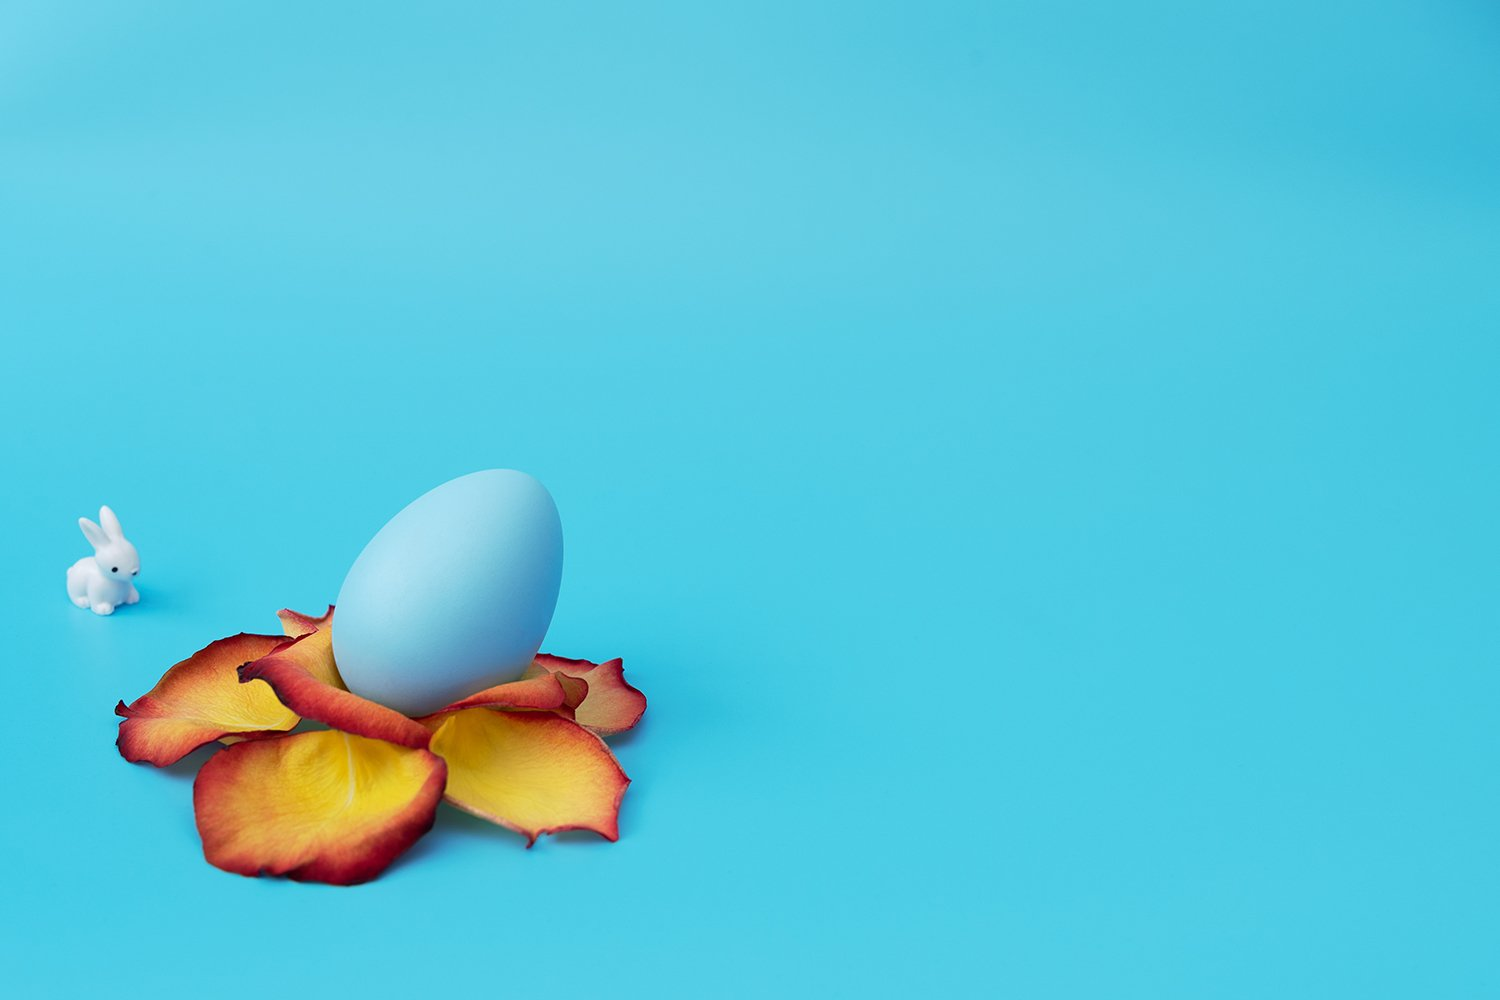 Blue Easter egg stands in yellow flower made of rose petals example image 1